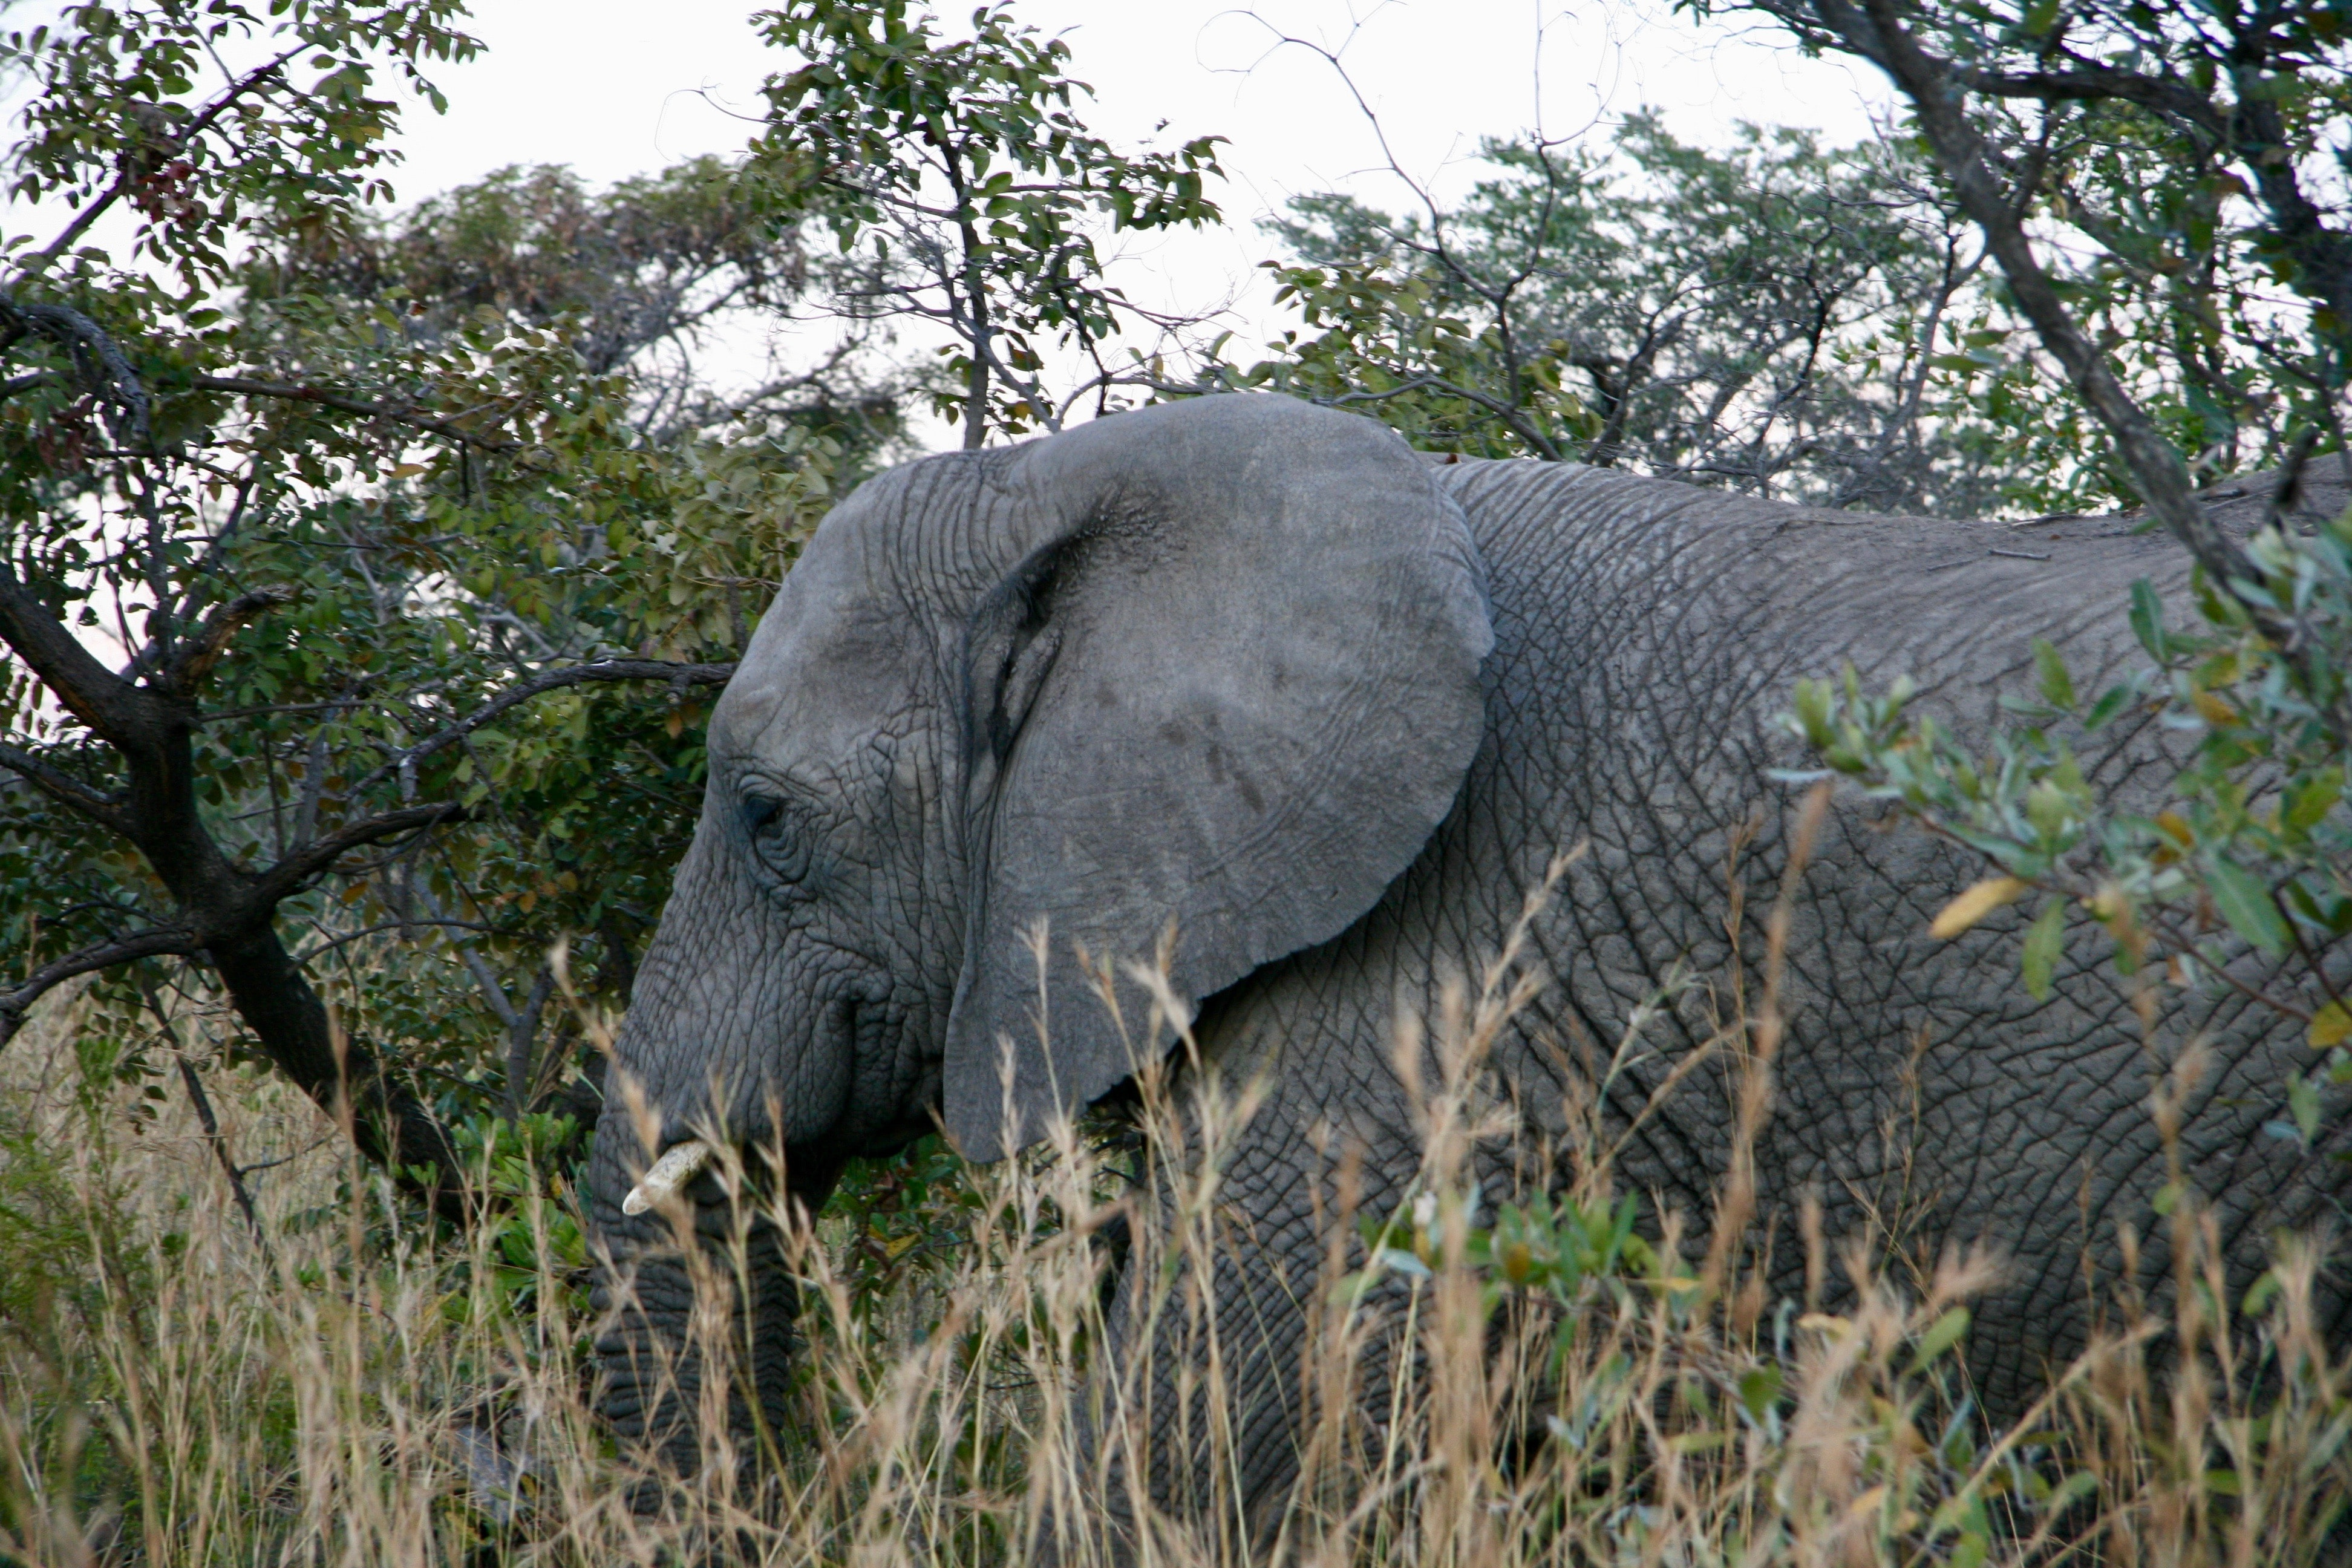 gray elephant beside trees during daytime